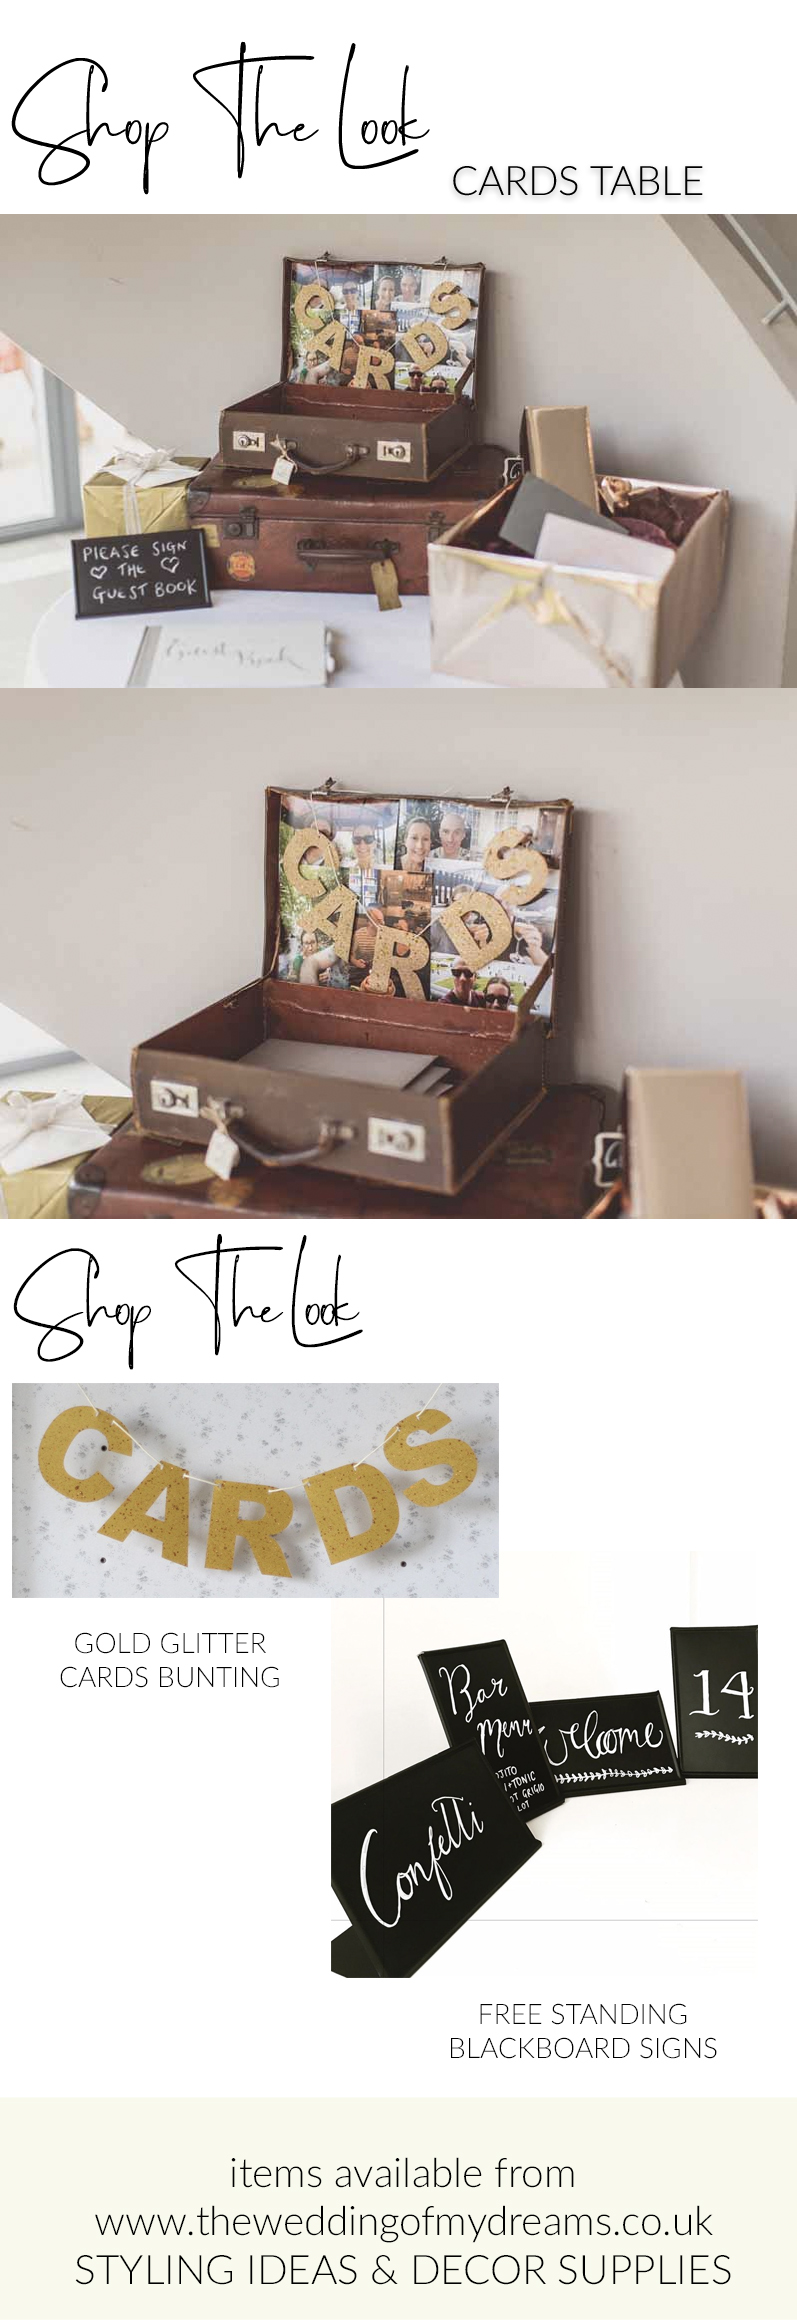 Cards table for weddings cards bunting suitcases and signs SHOP THE LOOK